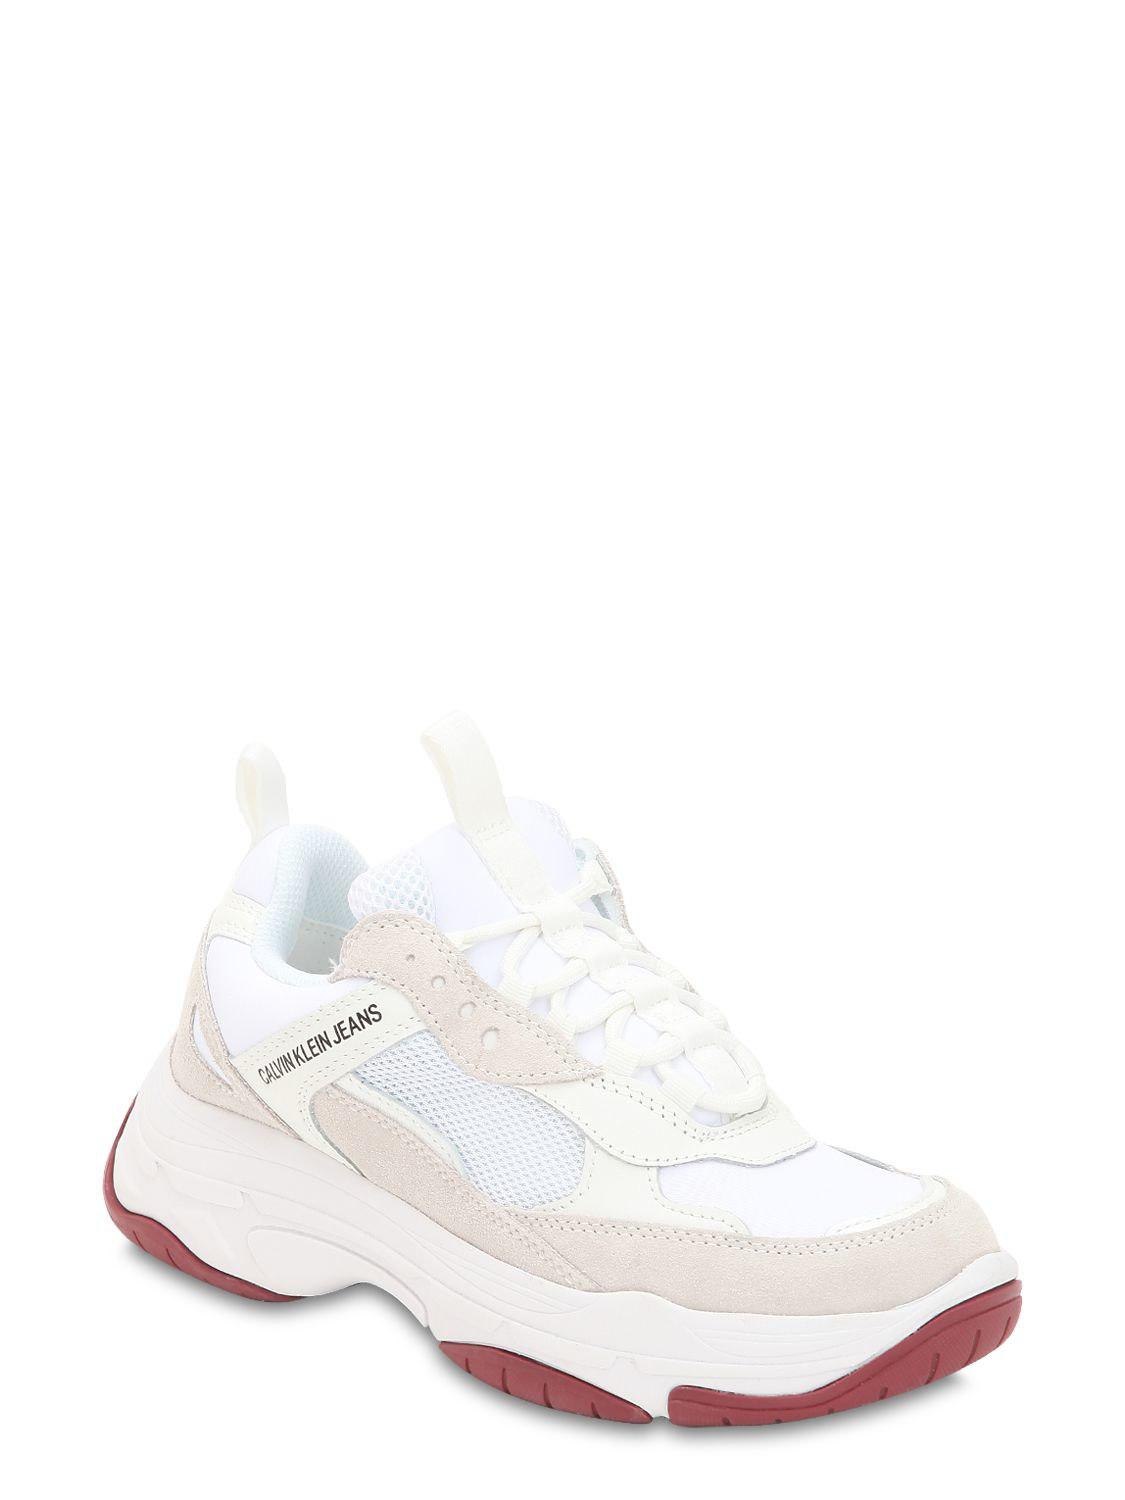 eaf44f05c Calvin Klein 60mm Maya Suede & Leather Sneakers in White - Lyst